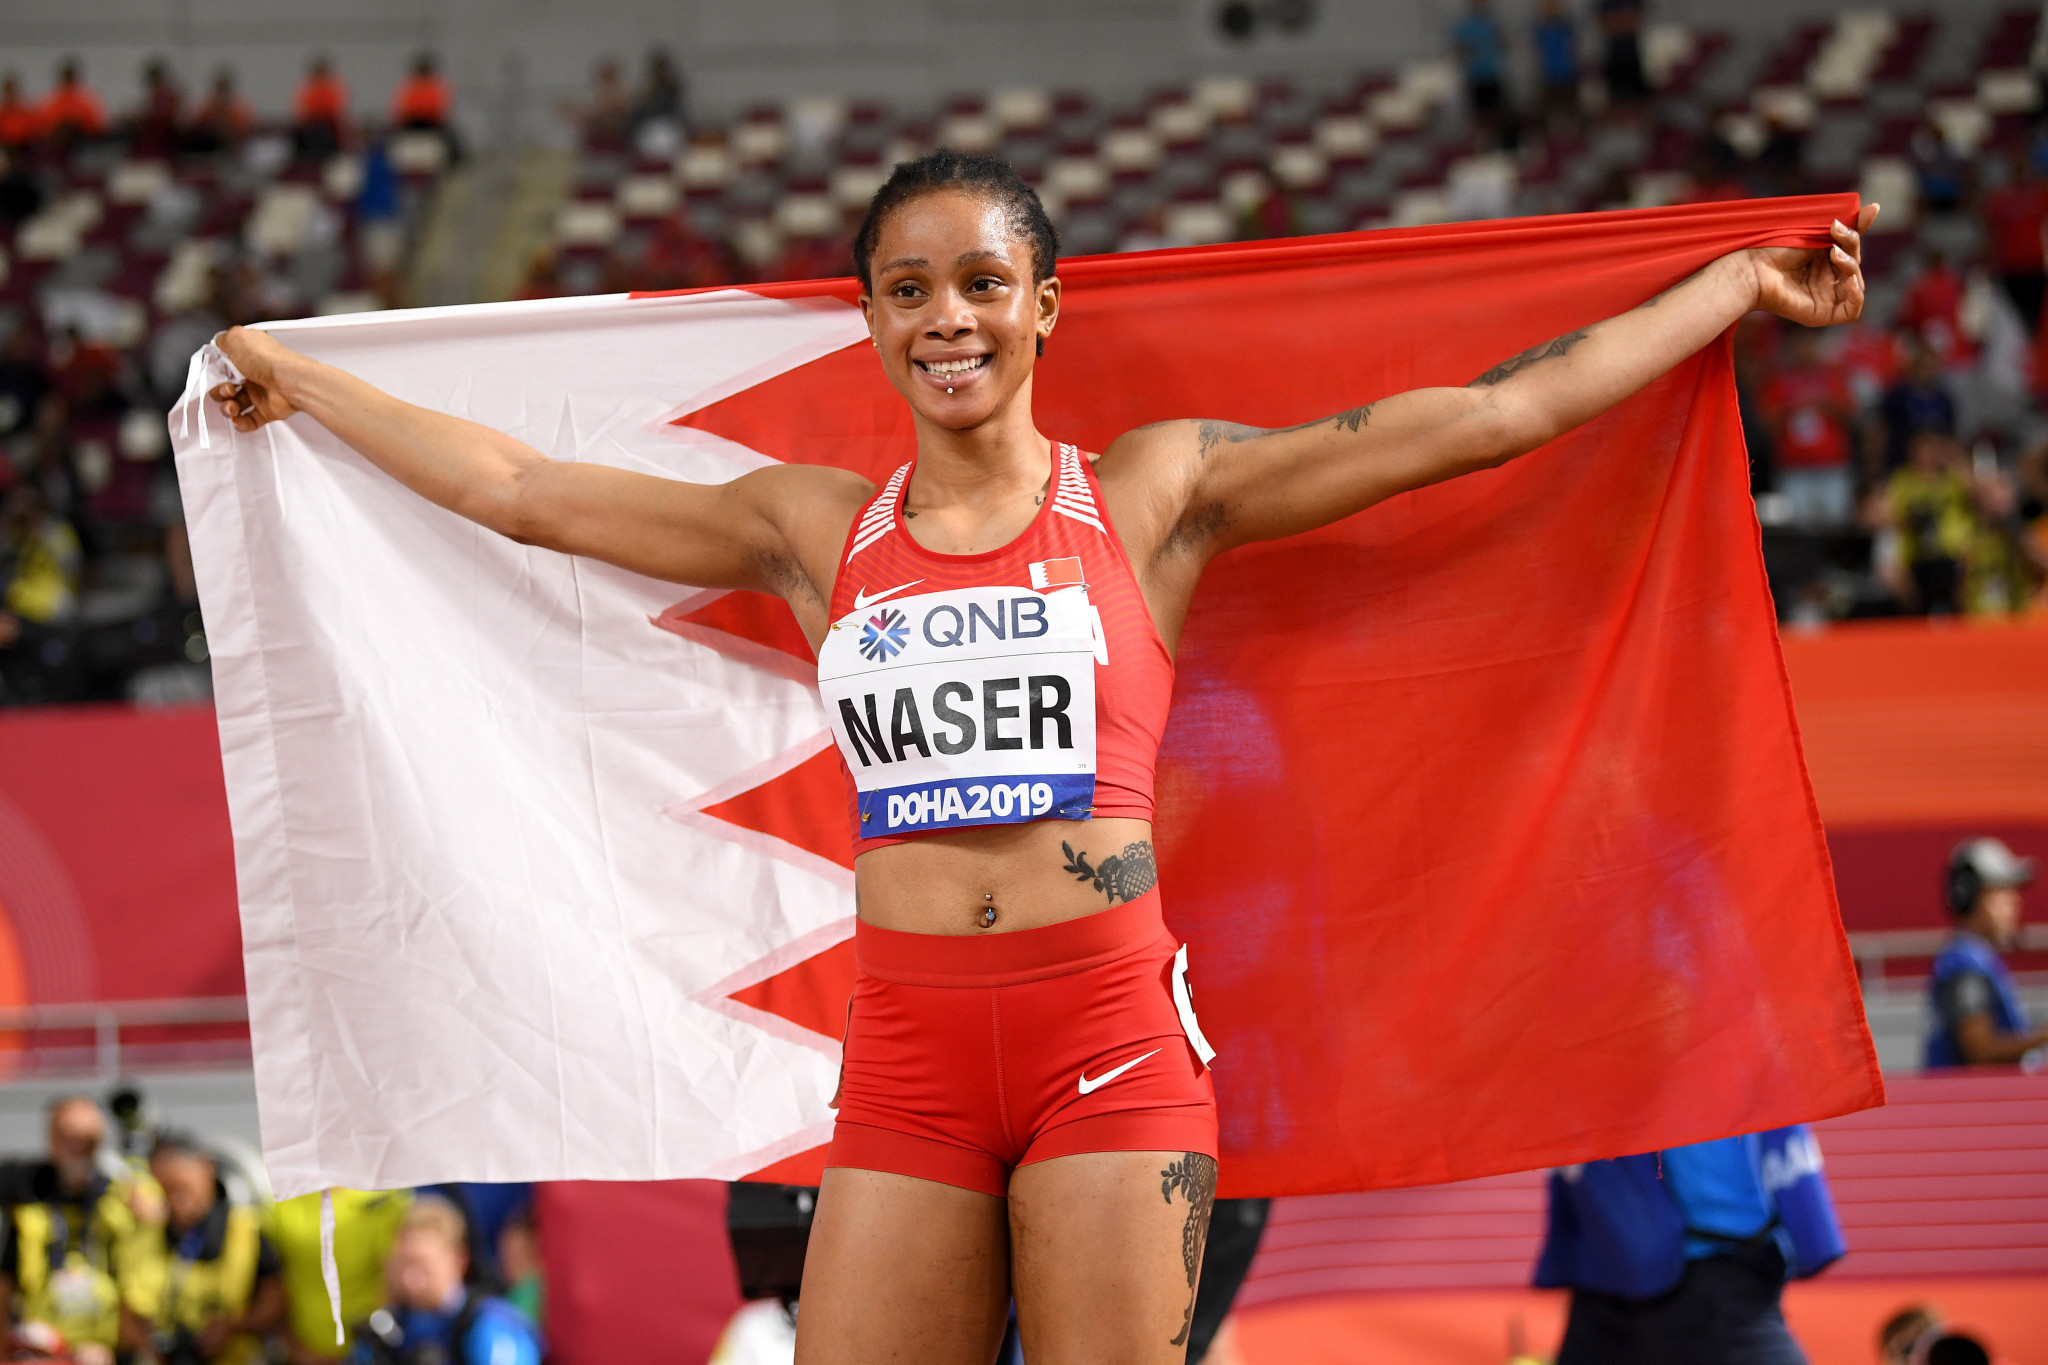 An appeal by the AIU against the sanction handed out to Bahraini athlete Salwa Eid Naser has been submitted to CAS ©Getty Images